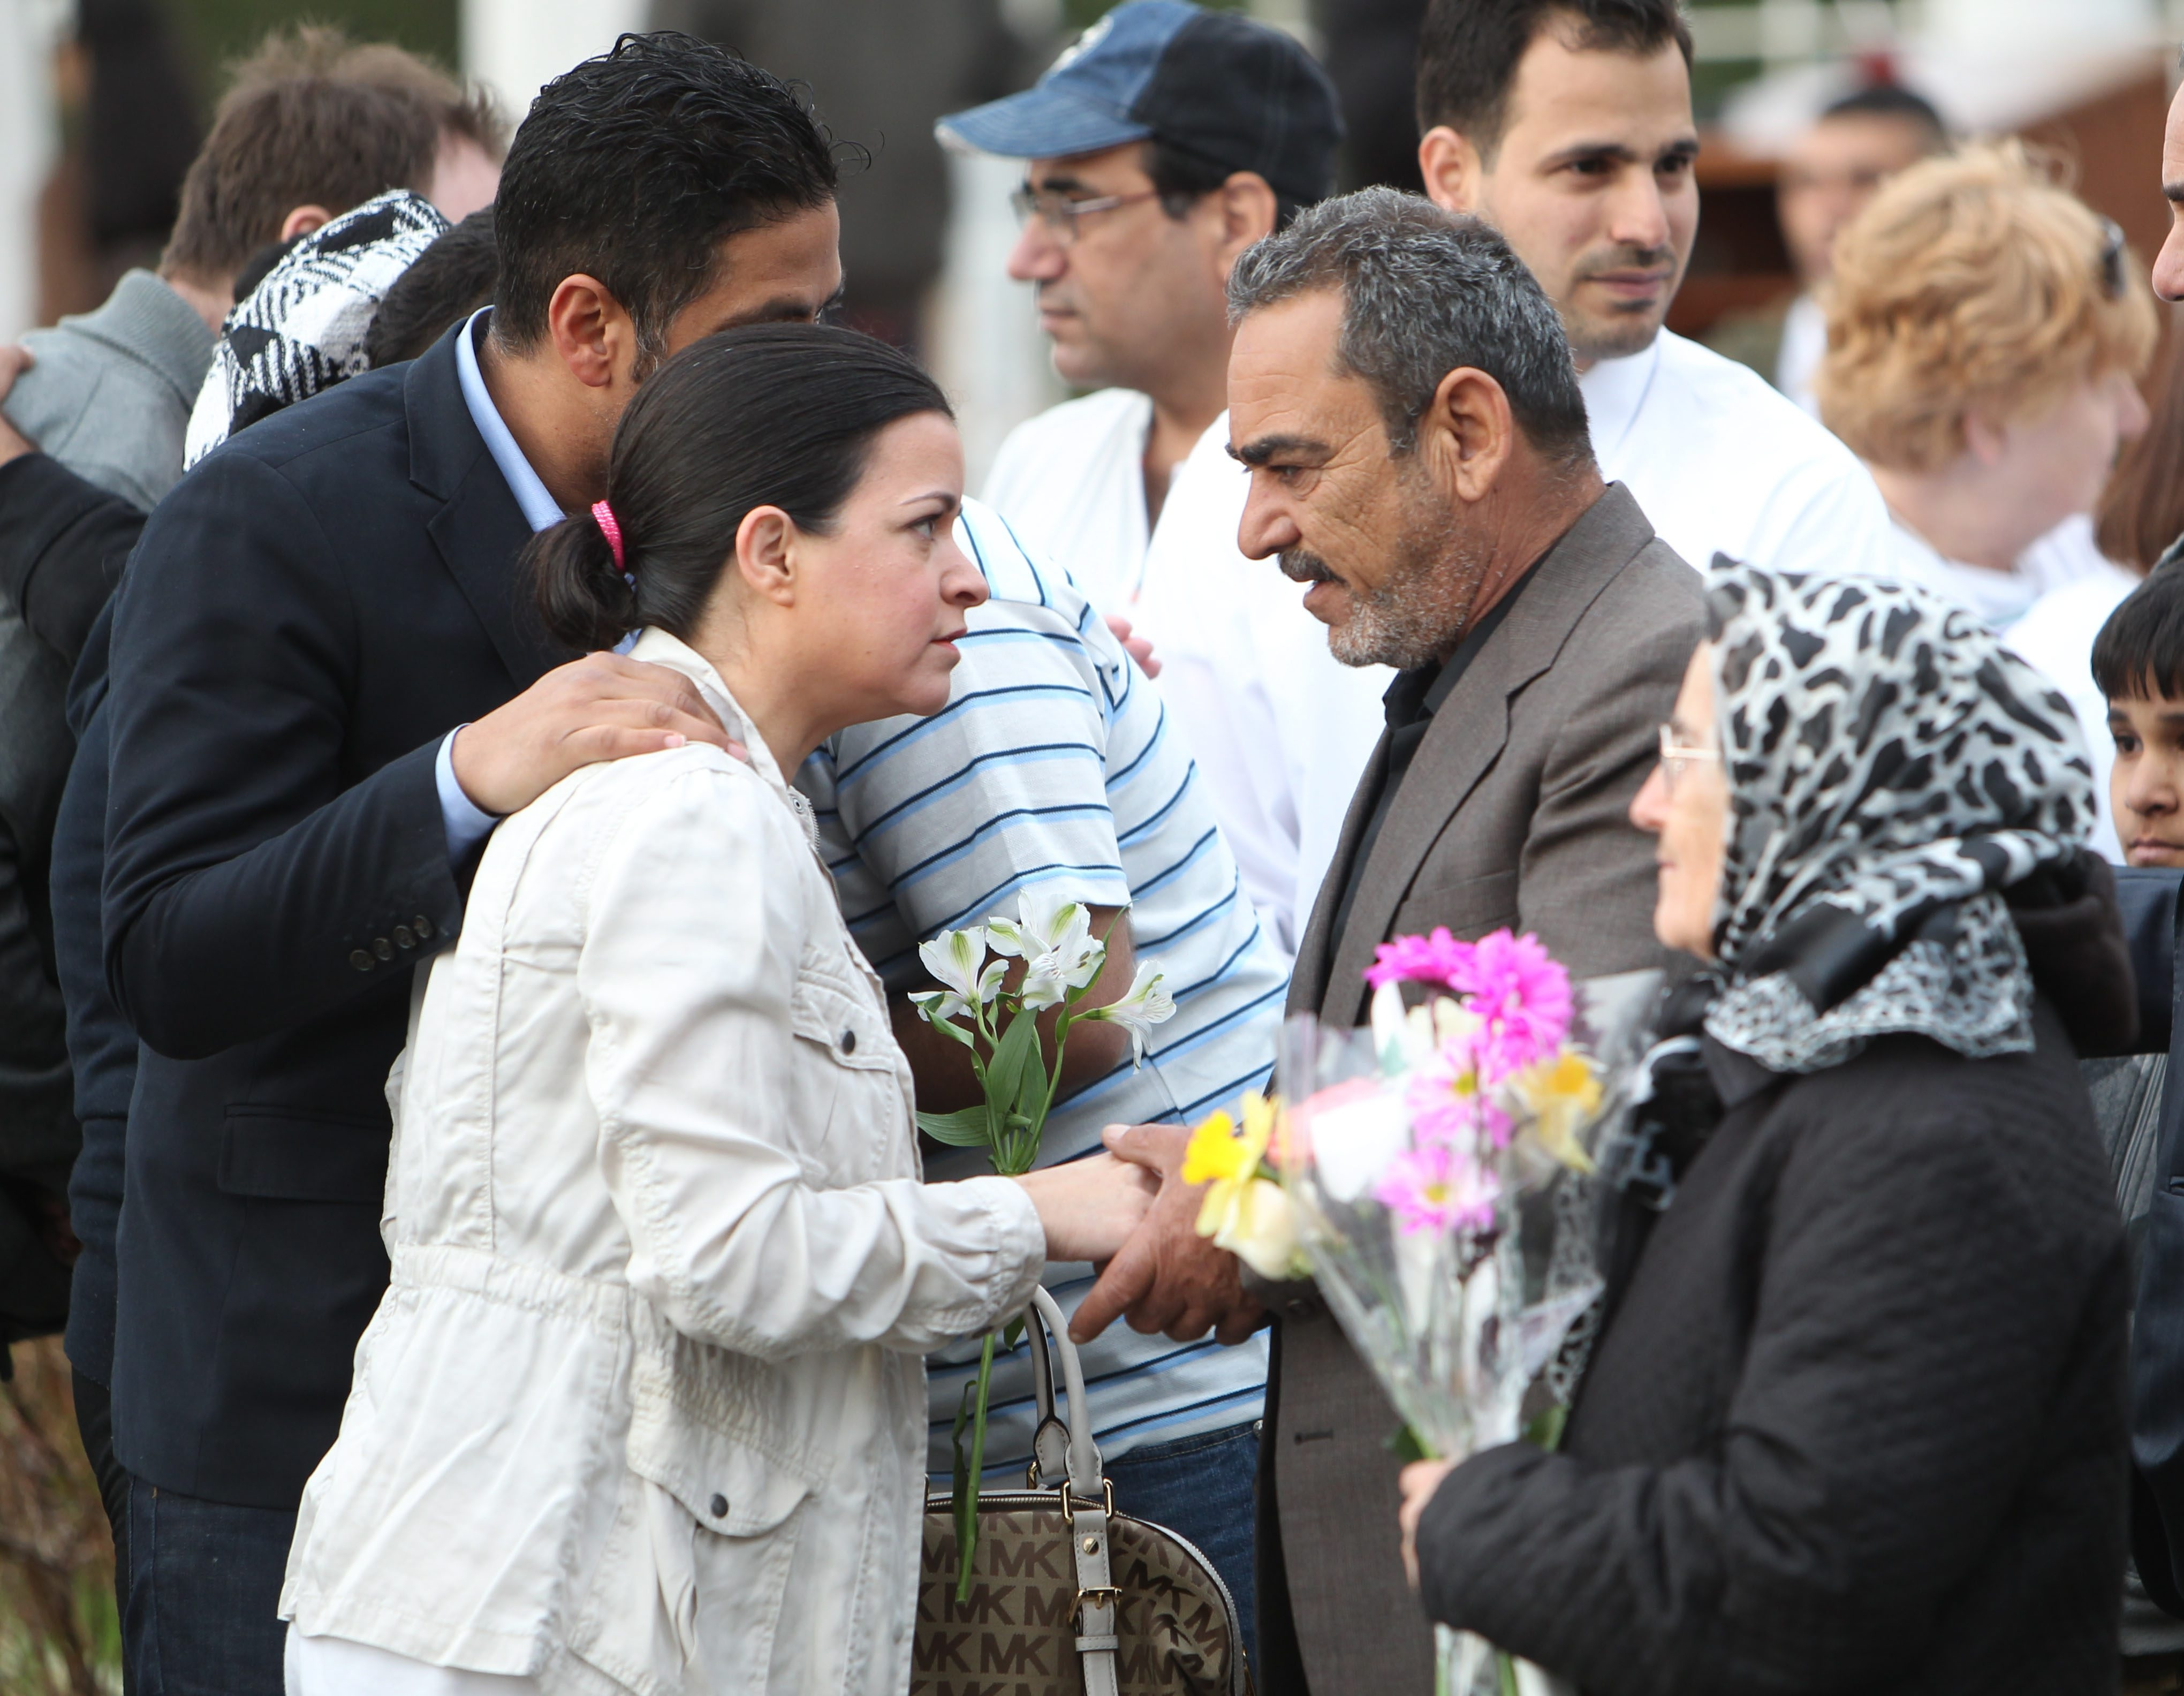 The Iraqi American Society organized a memorial service for Ameer Al Shammari at the Rose Garden at Delaware Park on Saturday. A couple offers their condolences to Ameer's father.